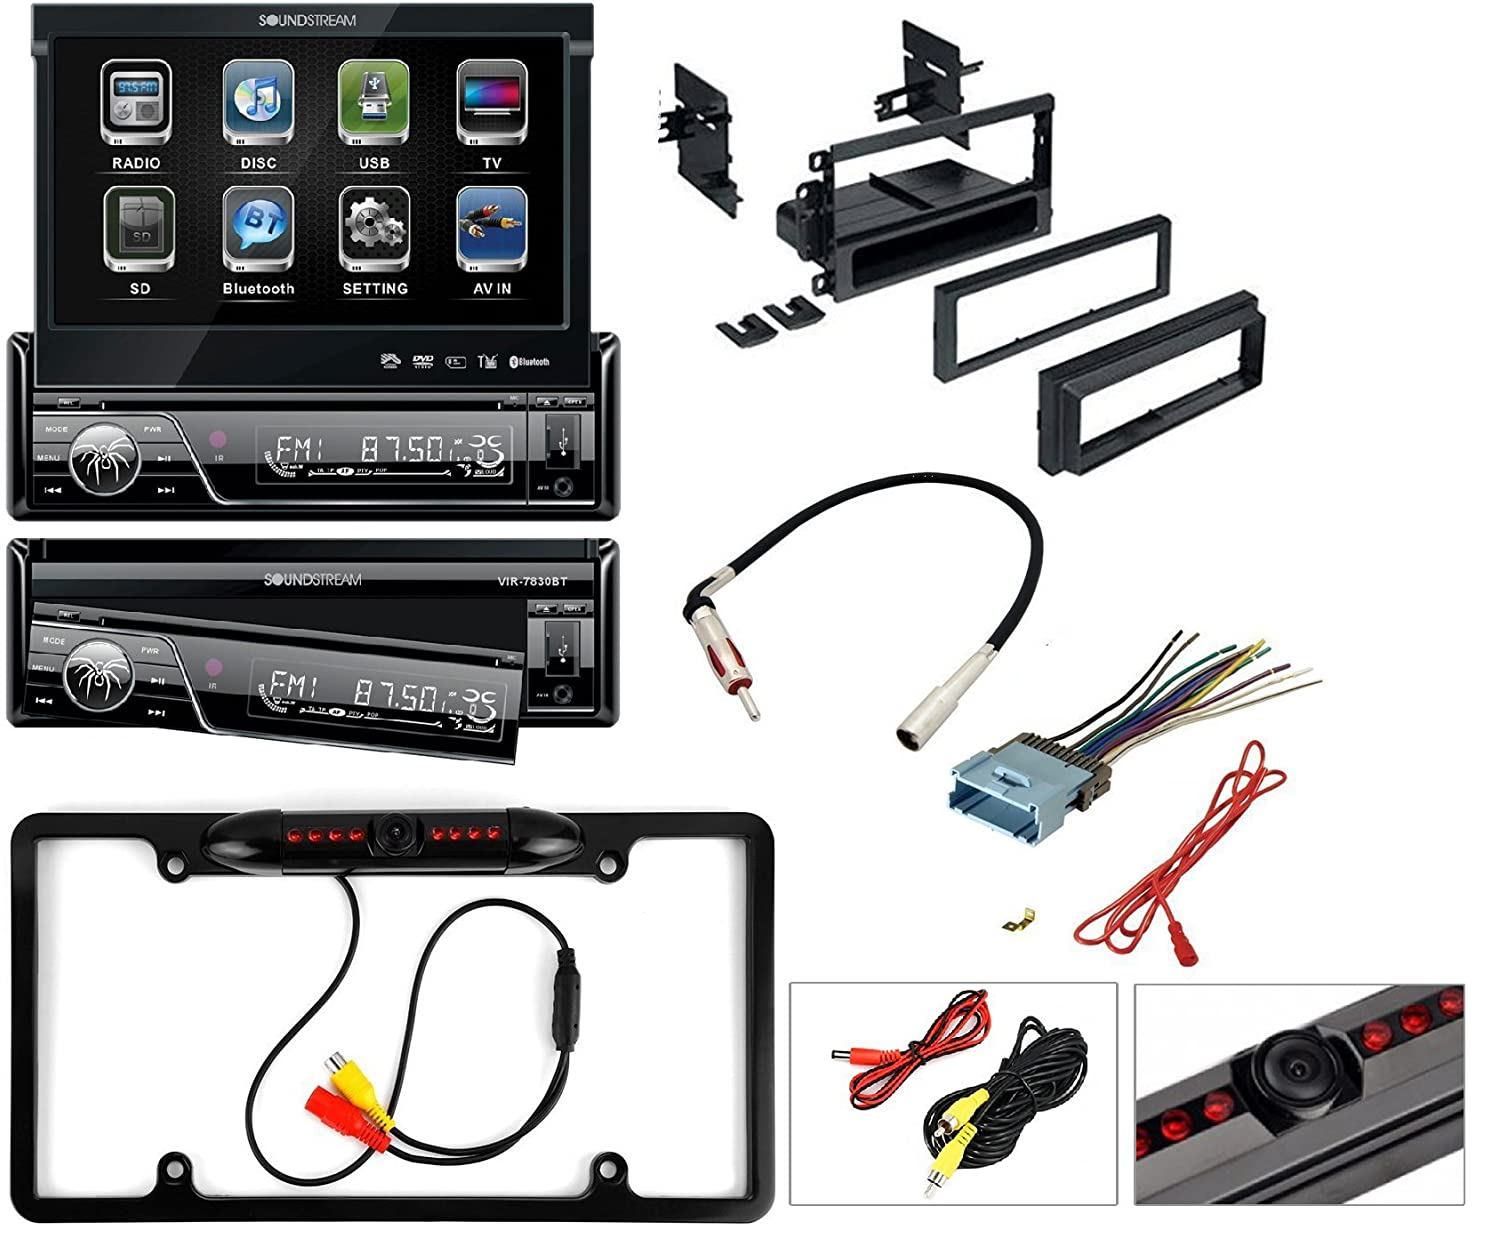 81k%2BiKcnM1L._SL1500_ soundstream vir 7830b wiring harness soundstream touch screen soundstream vir 7830b specs wiring diagram at mifinder.co